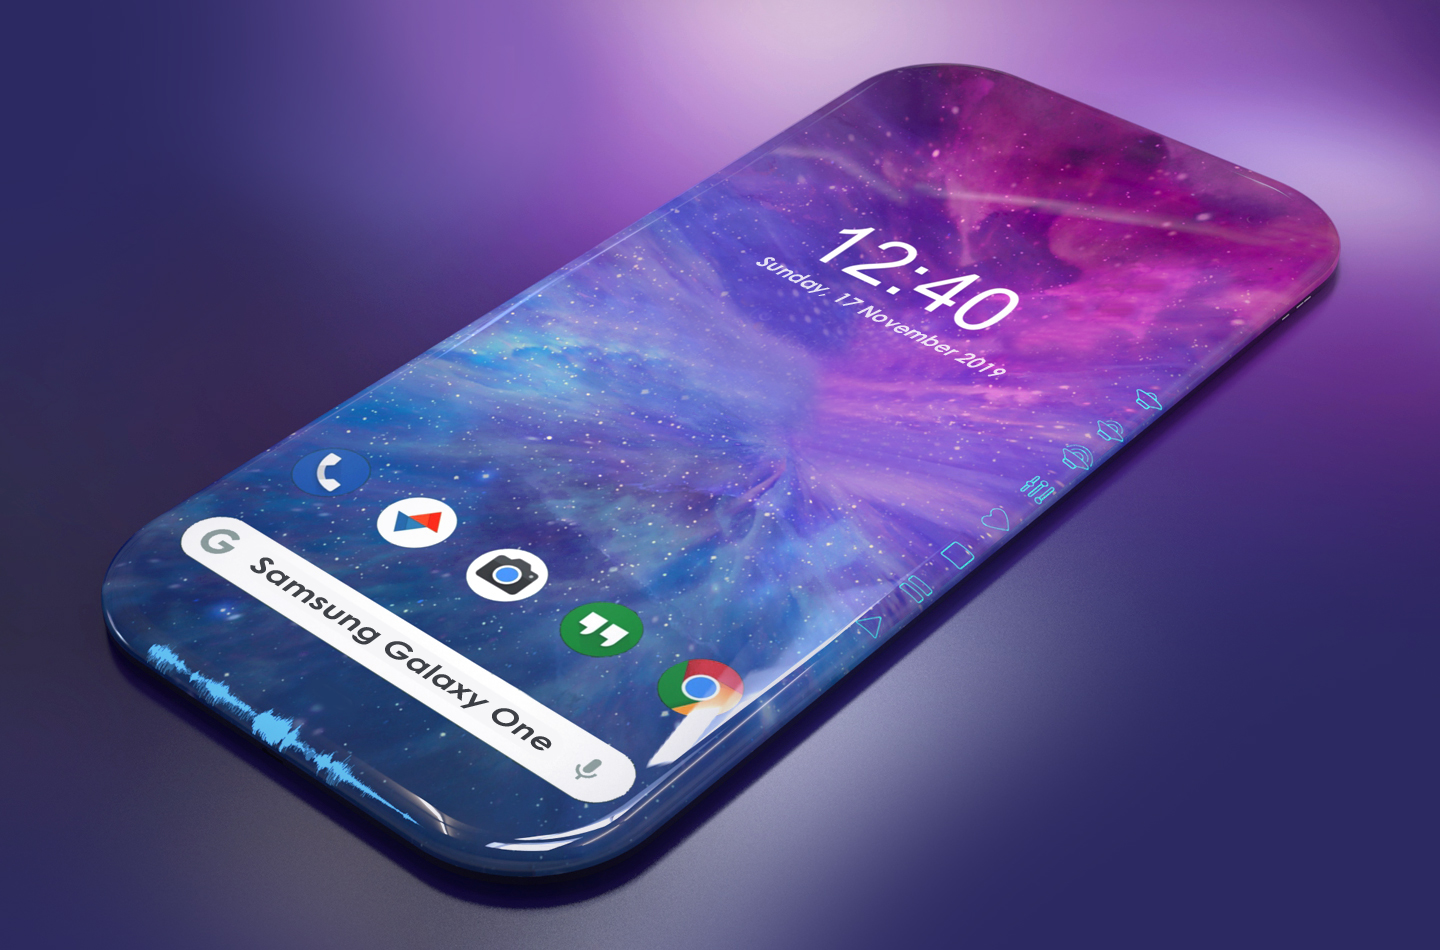 Samsung Galaxy One